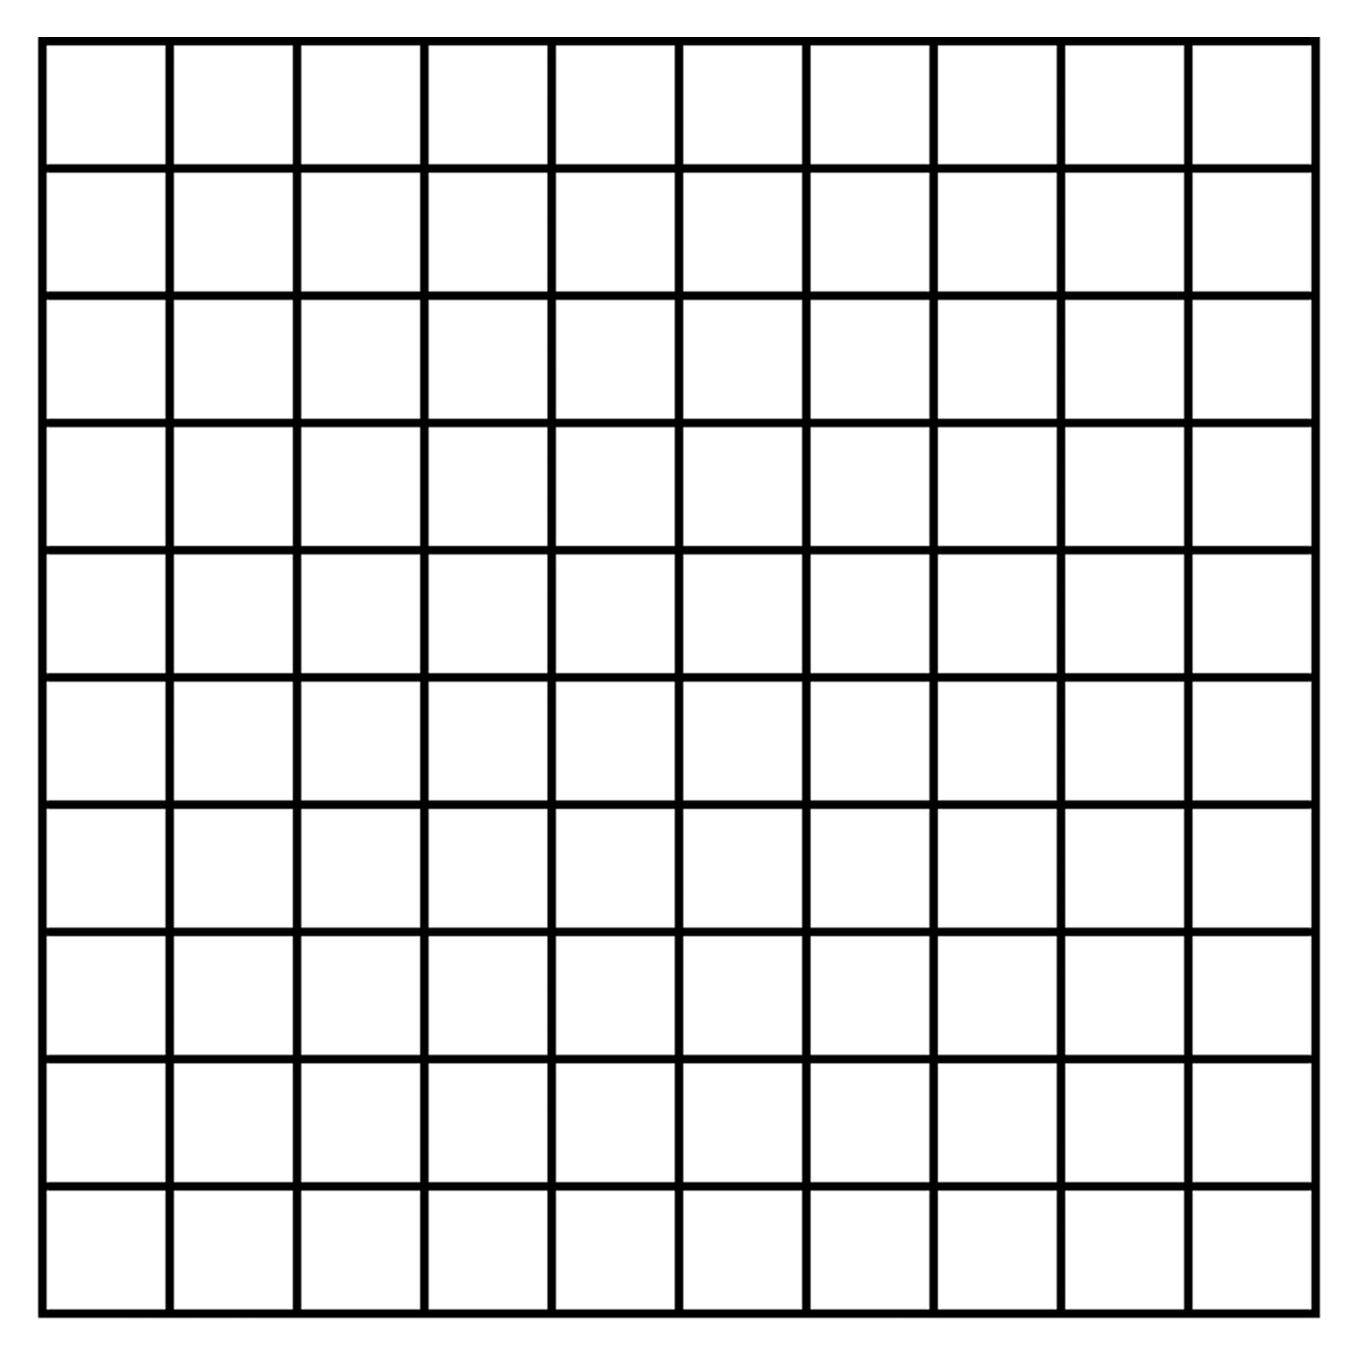 10 x 10 Grids   TeacherVision